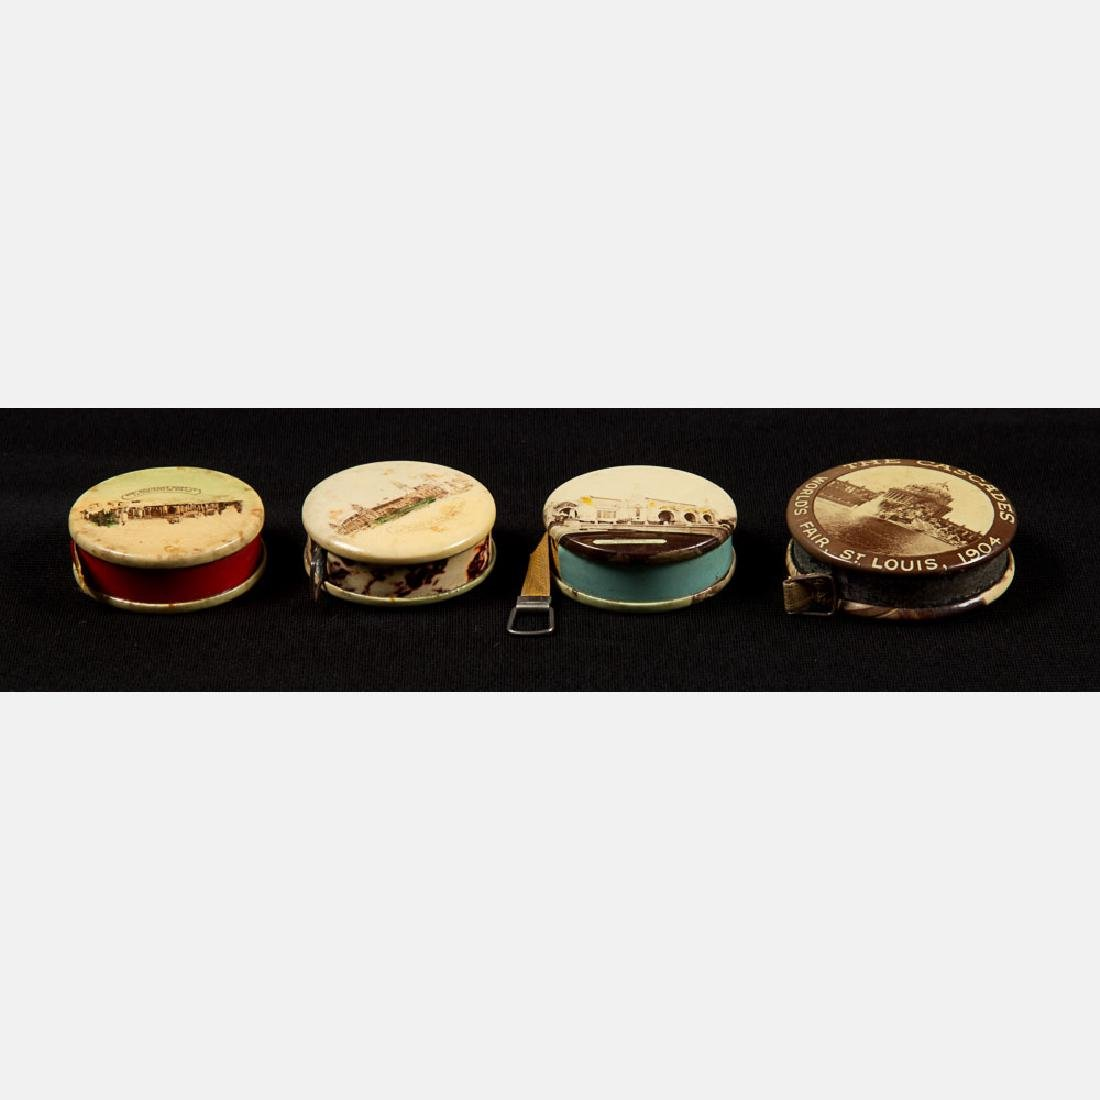 A Group of Four Multicolored Celluloid Measuring Tapes